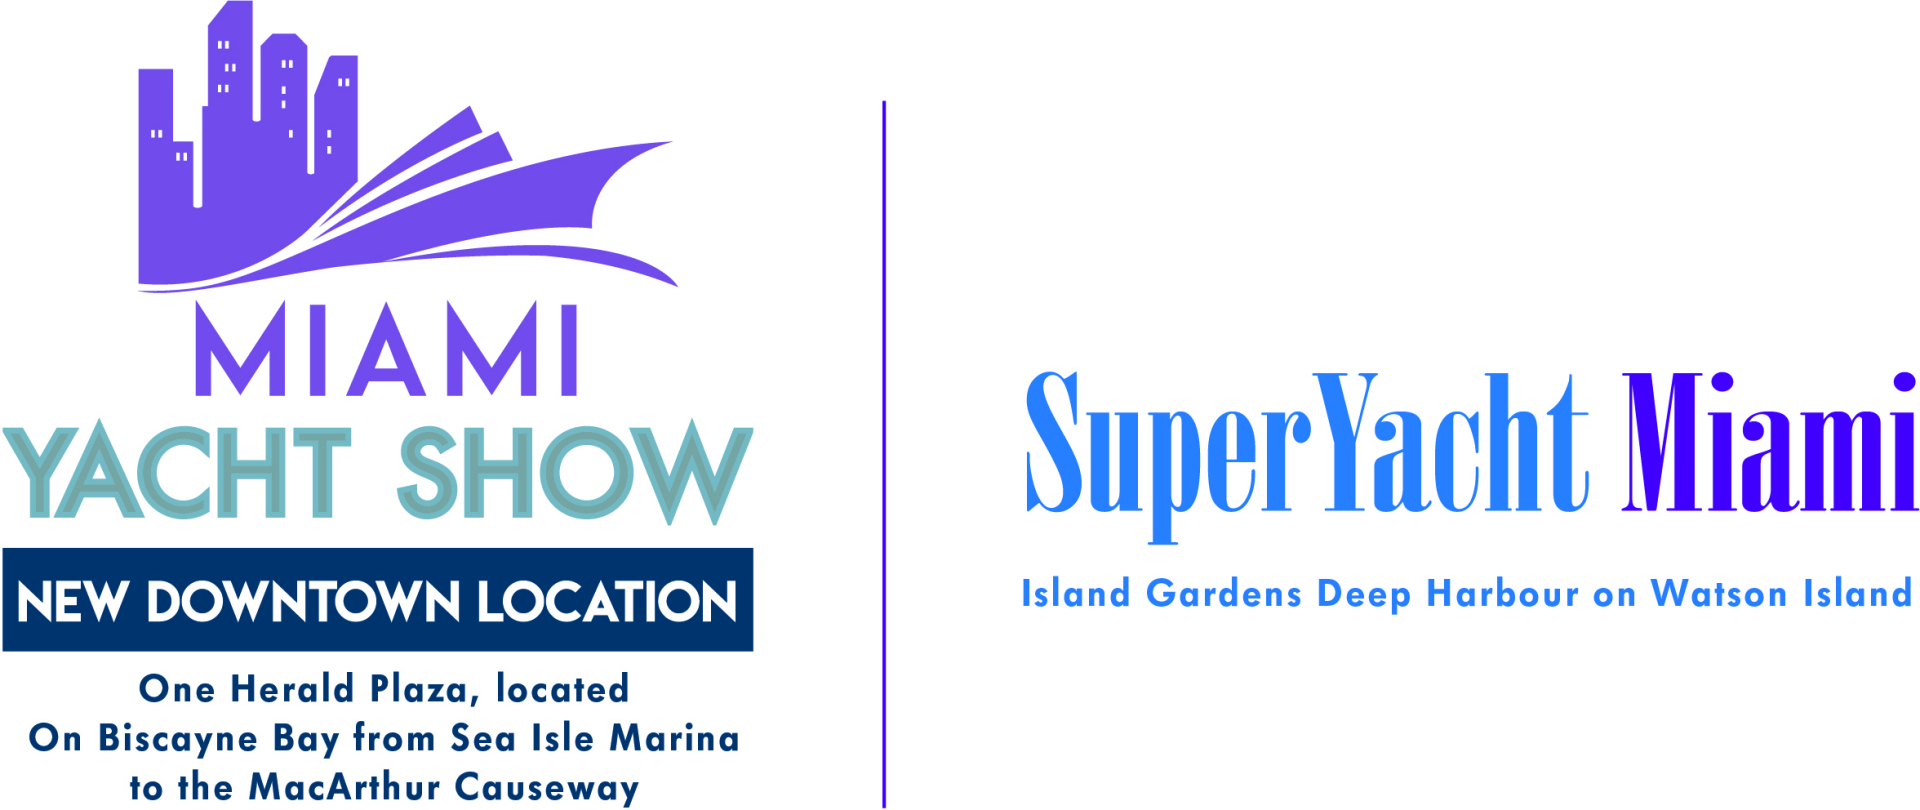 Upcoming Event - The Miami Yacht Show